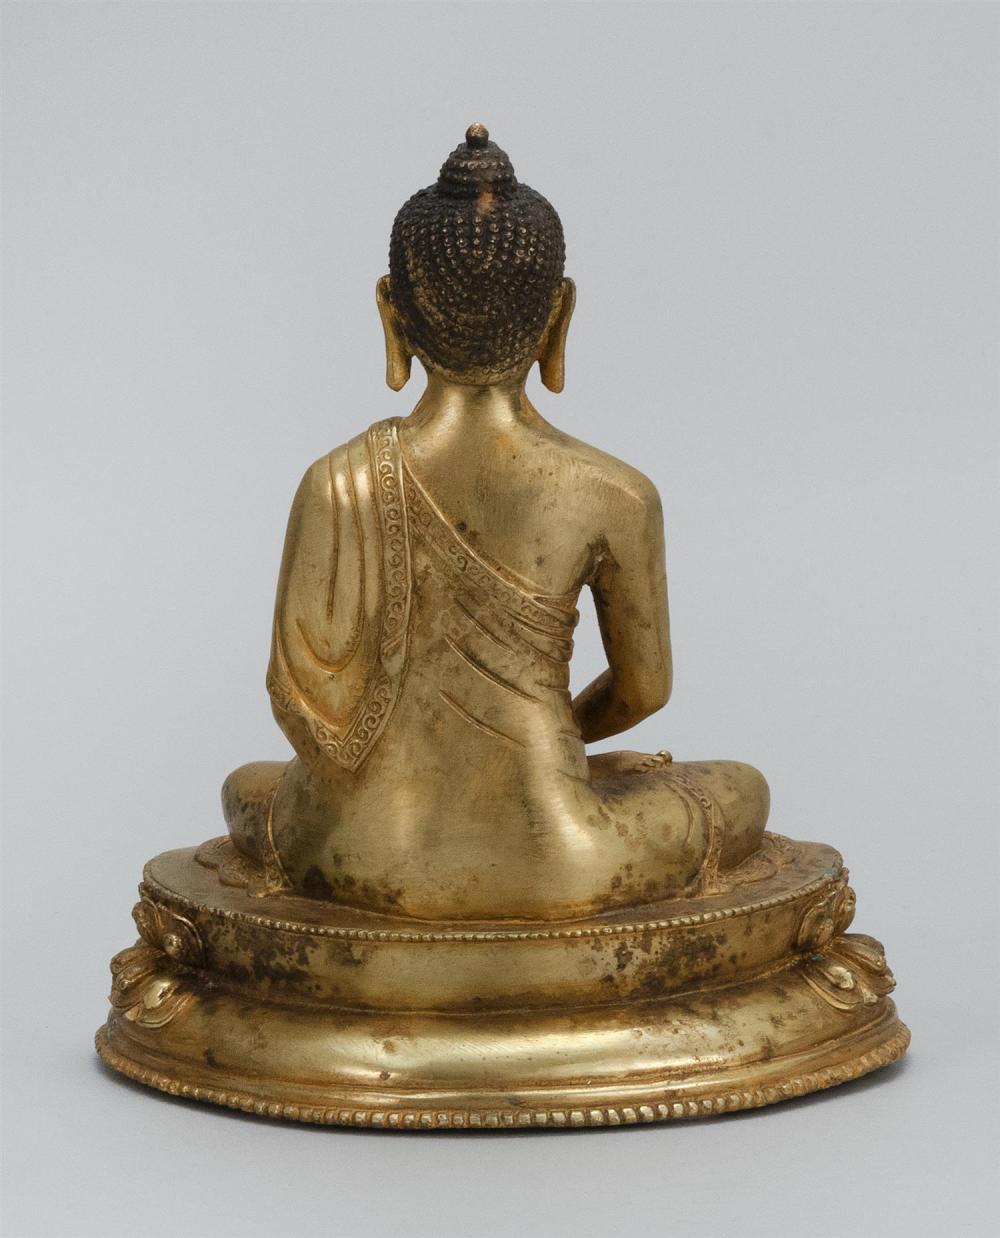 SINO-TIBETAN GILT-BRONZE FIGURE OF BUDDHA Seated in lotus posture on a two-tier lotus base and holding a censer. Height 7.8